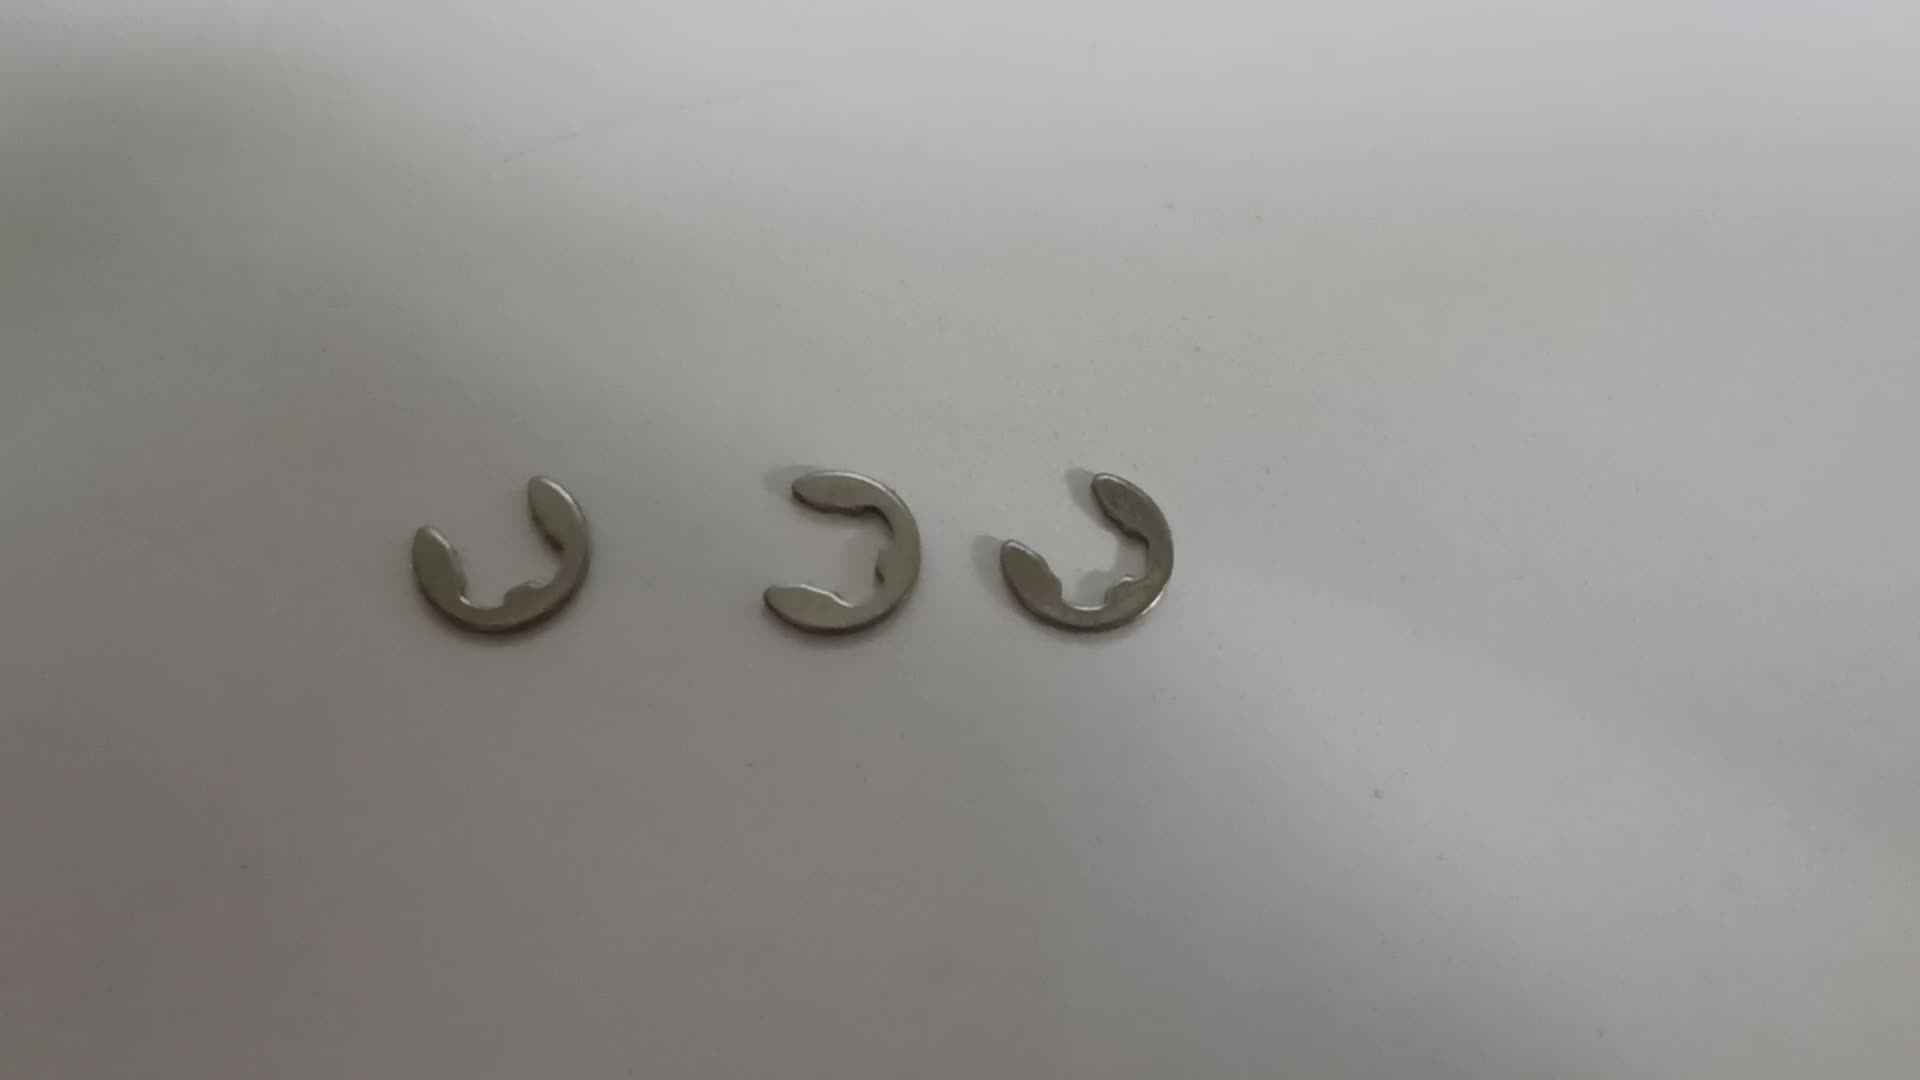 E circlip Black Oxide carbon steel DIN6799 lock washer Retaining Washers For Shafts